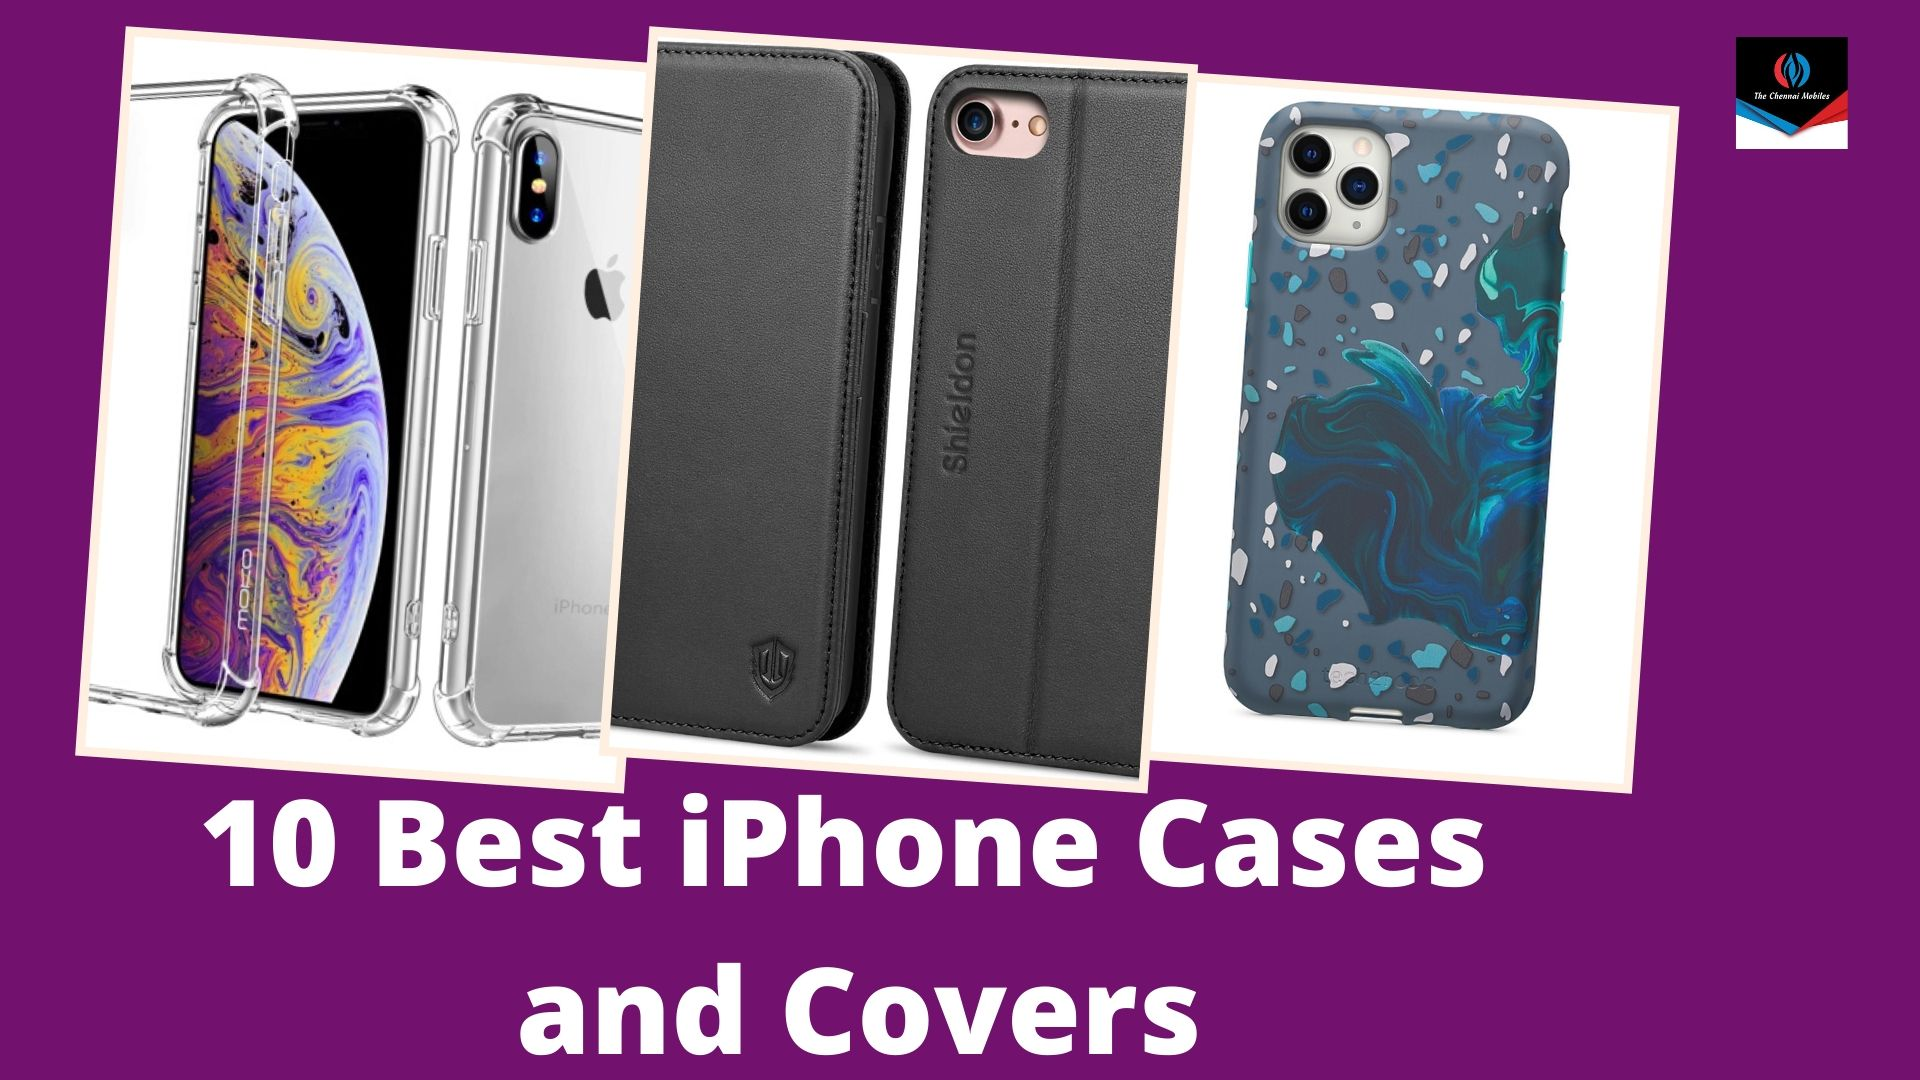 10 Best iPhone Cases and Covers